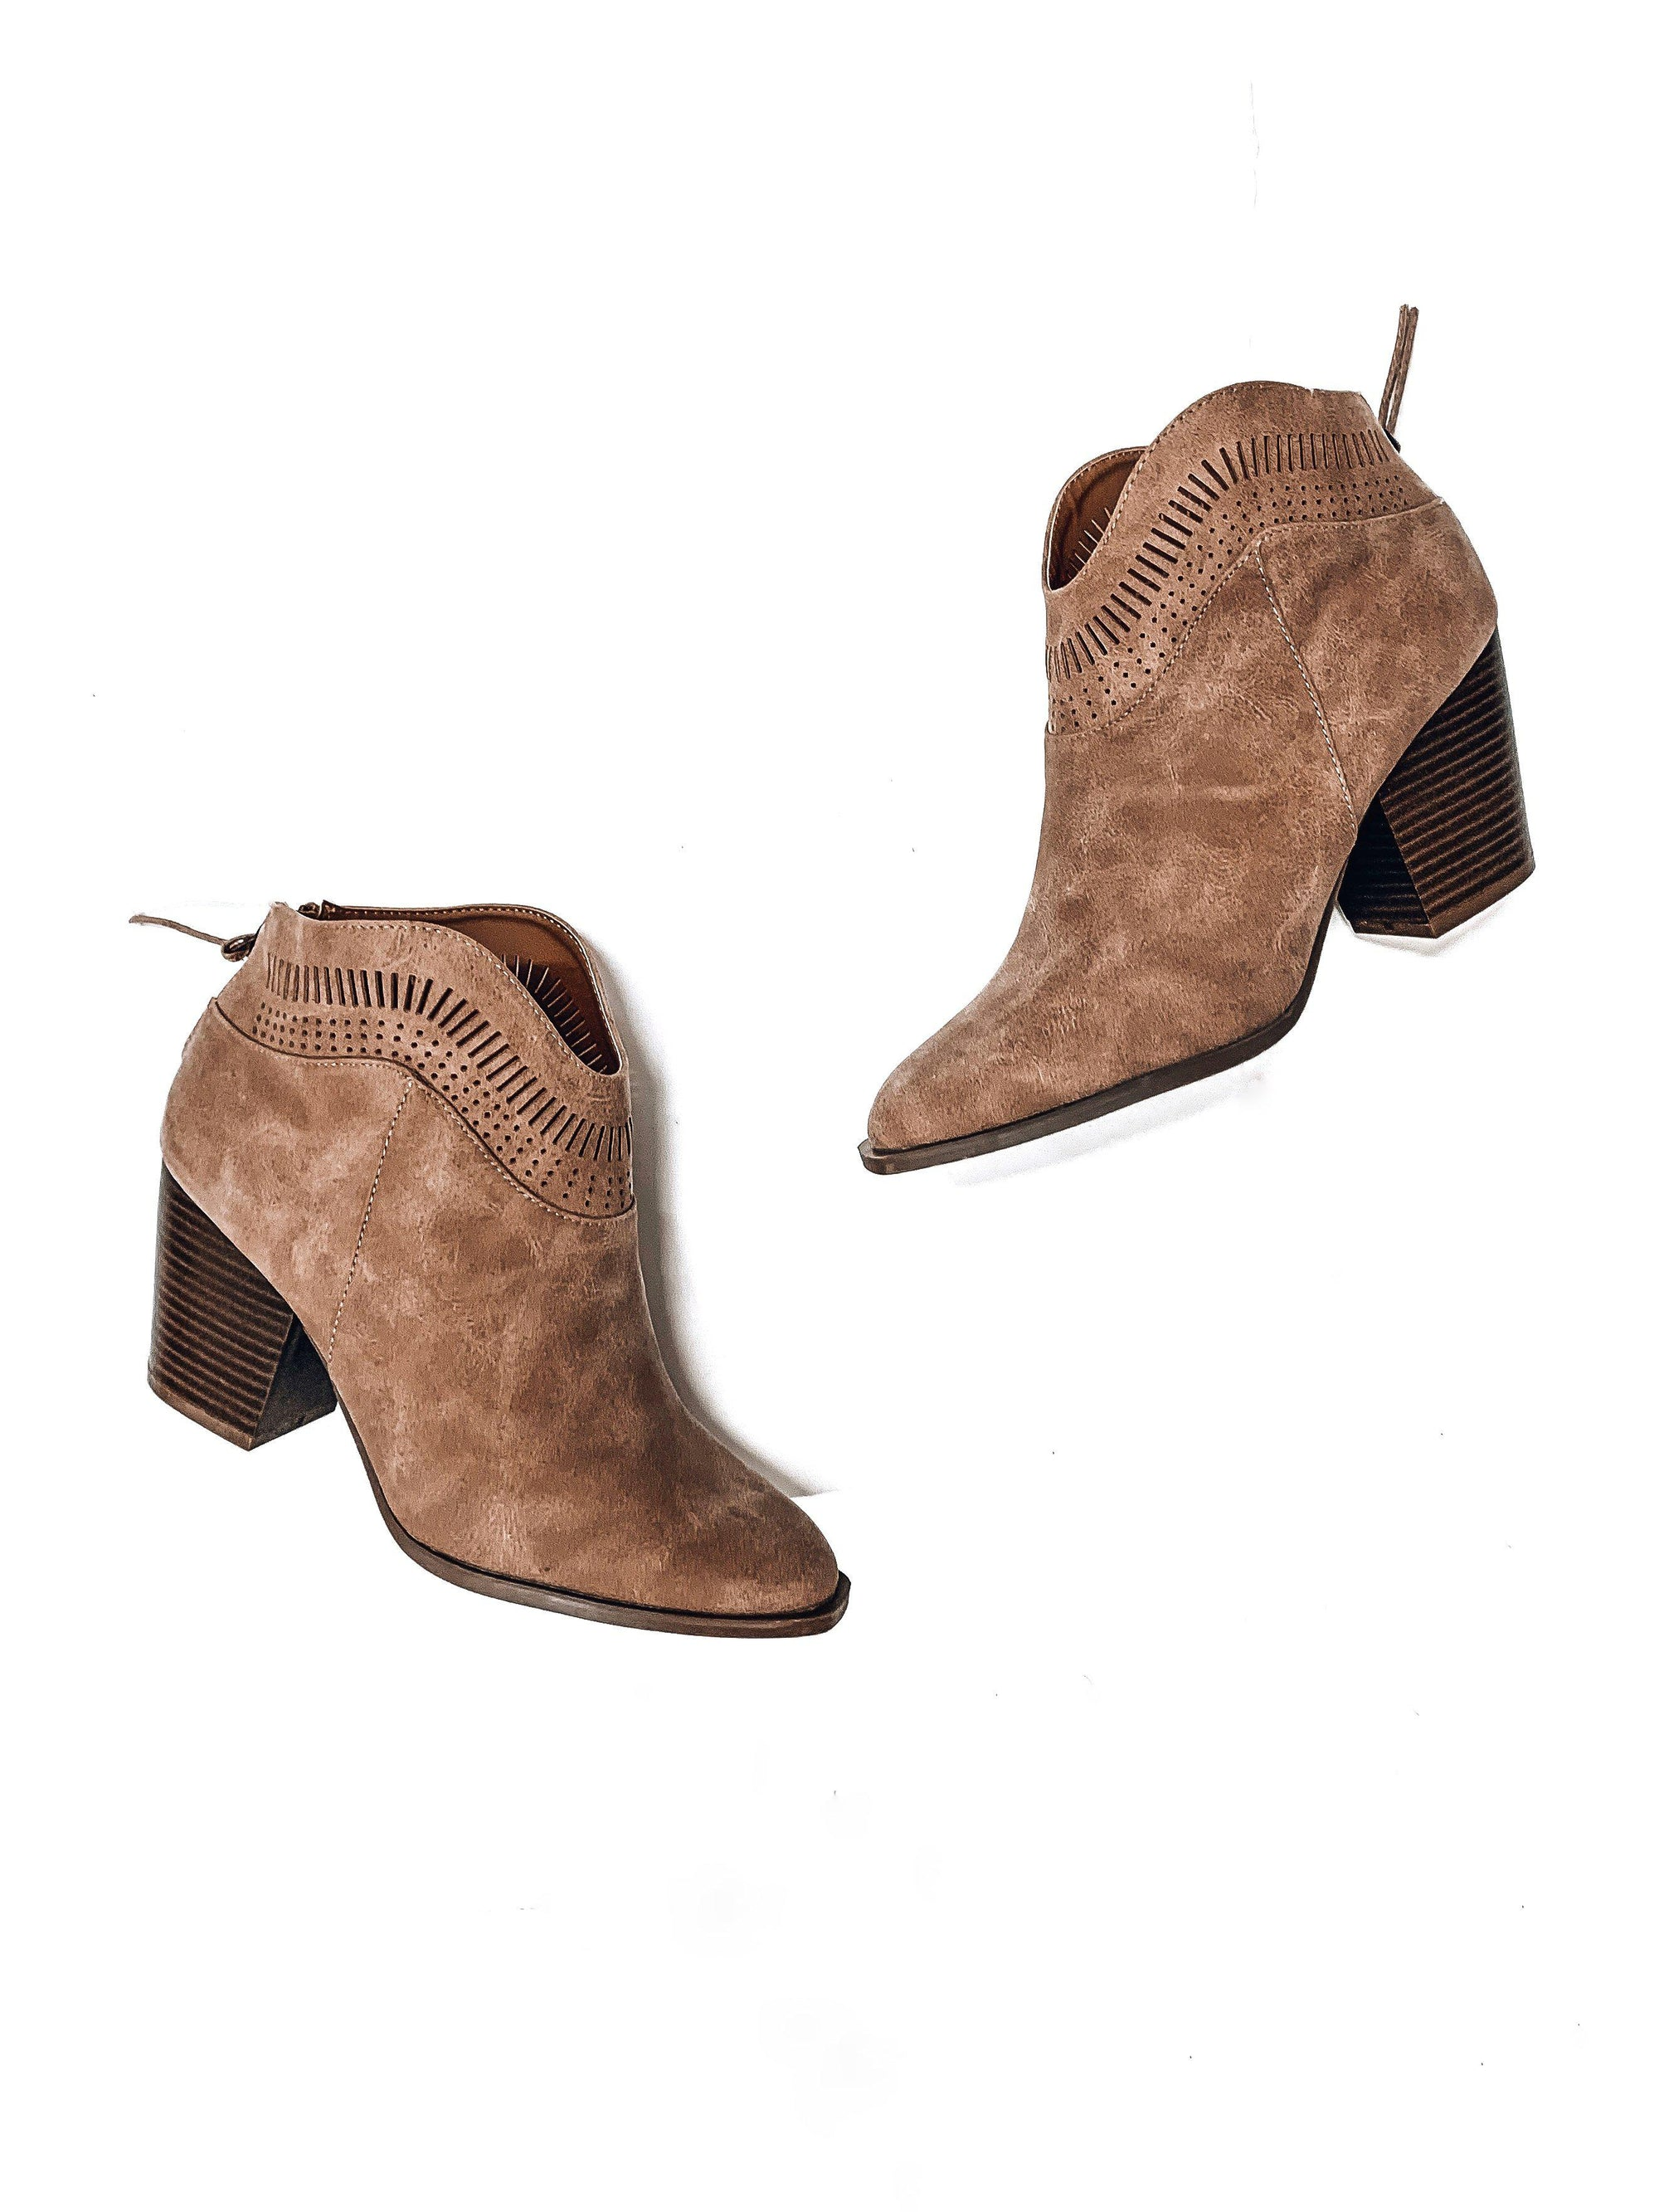 The Alexa-Women's SHOES-New Arrivals-Runway Seven